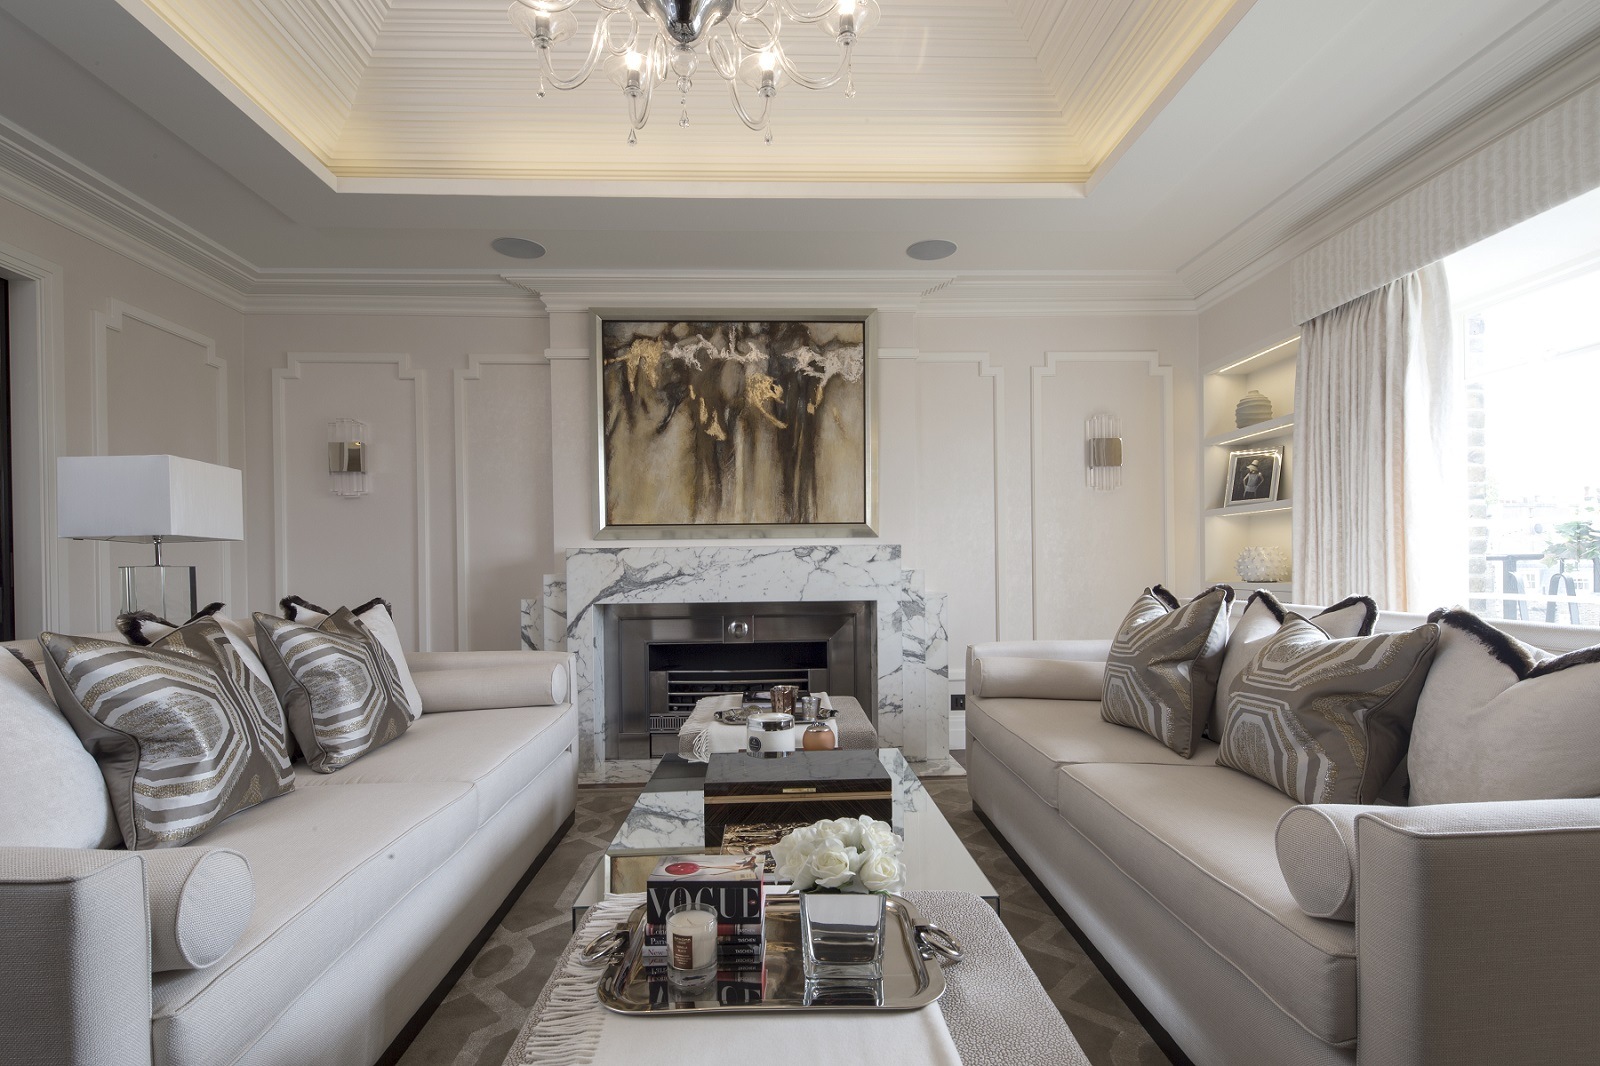 Apartment for Sale at Eaton Square London, England, United Kingdom